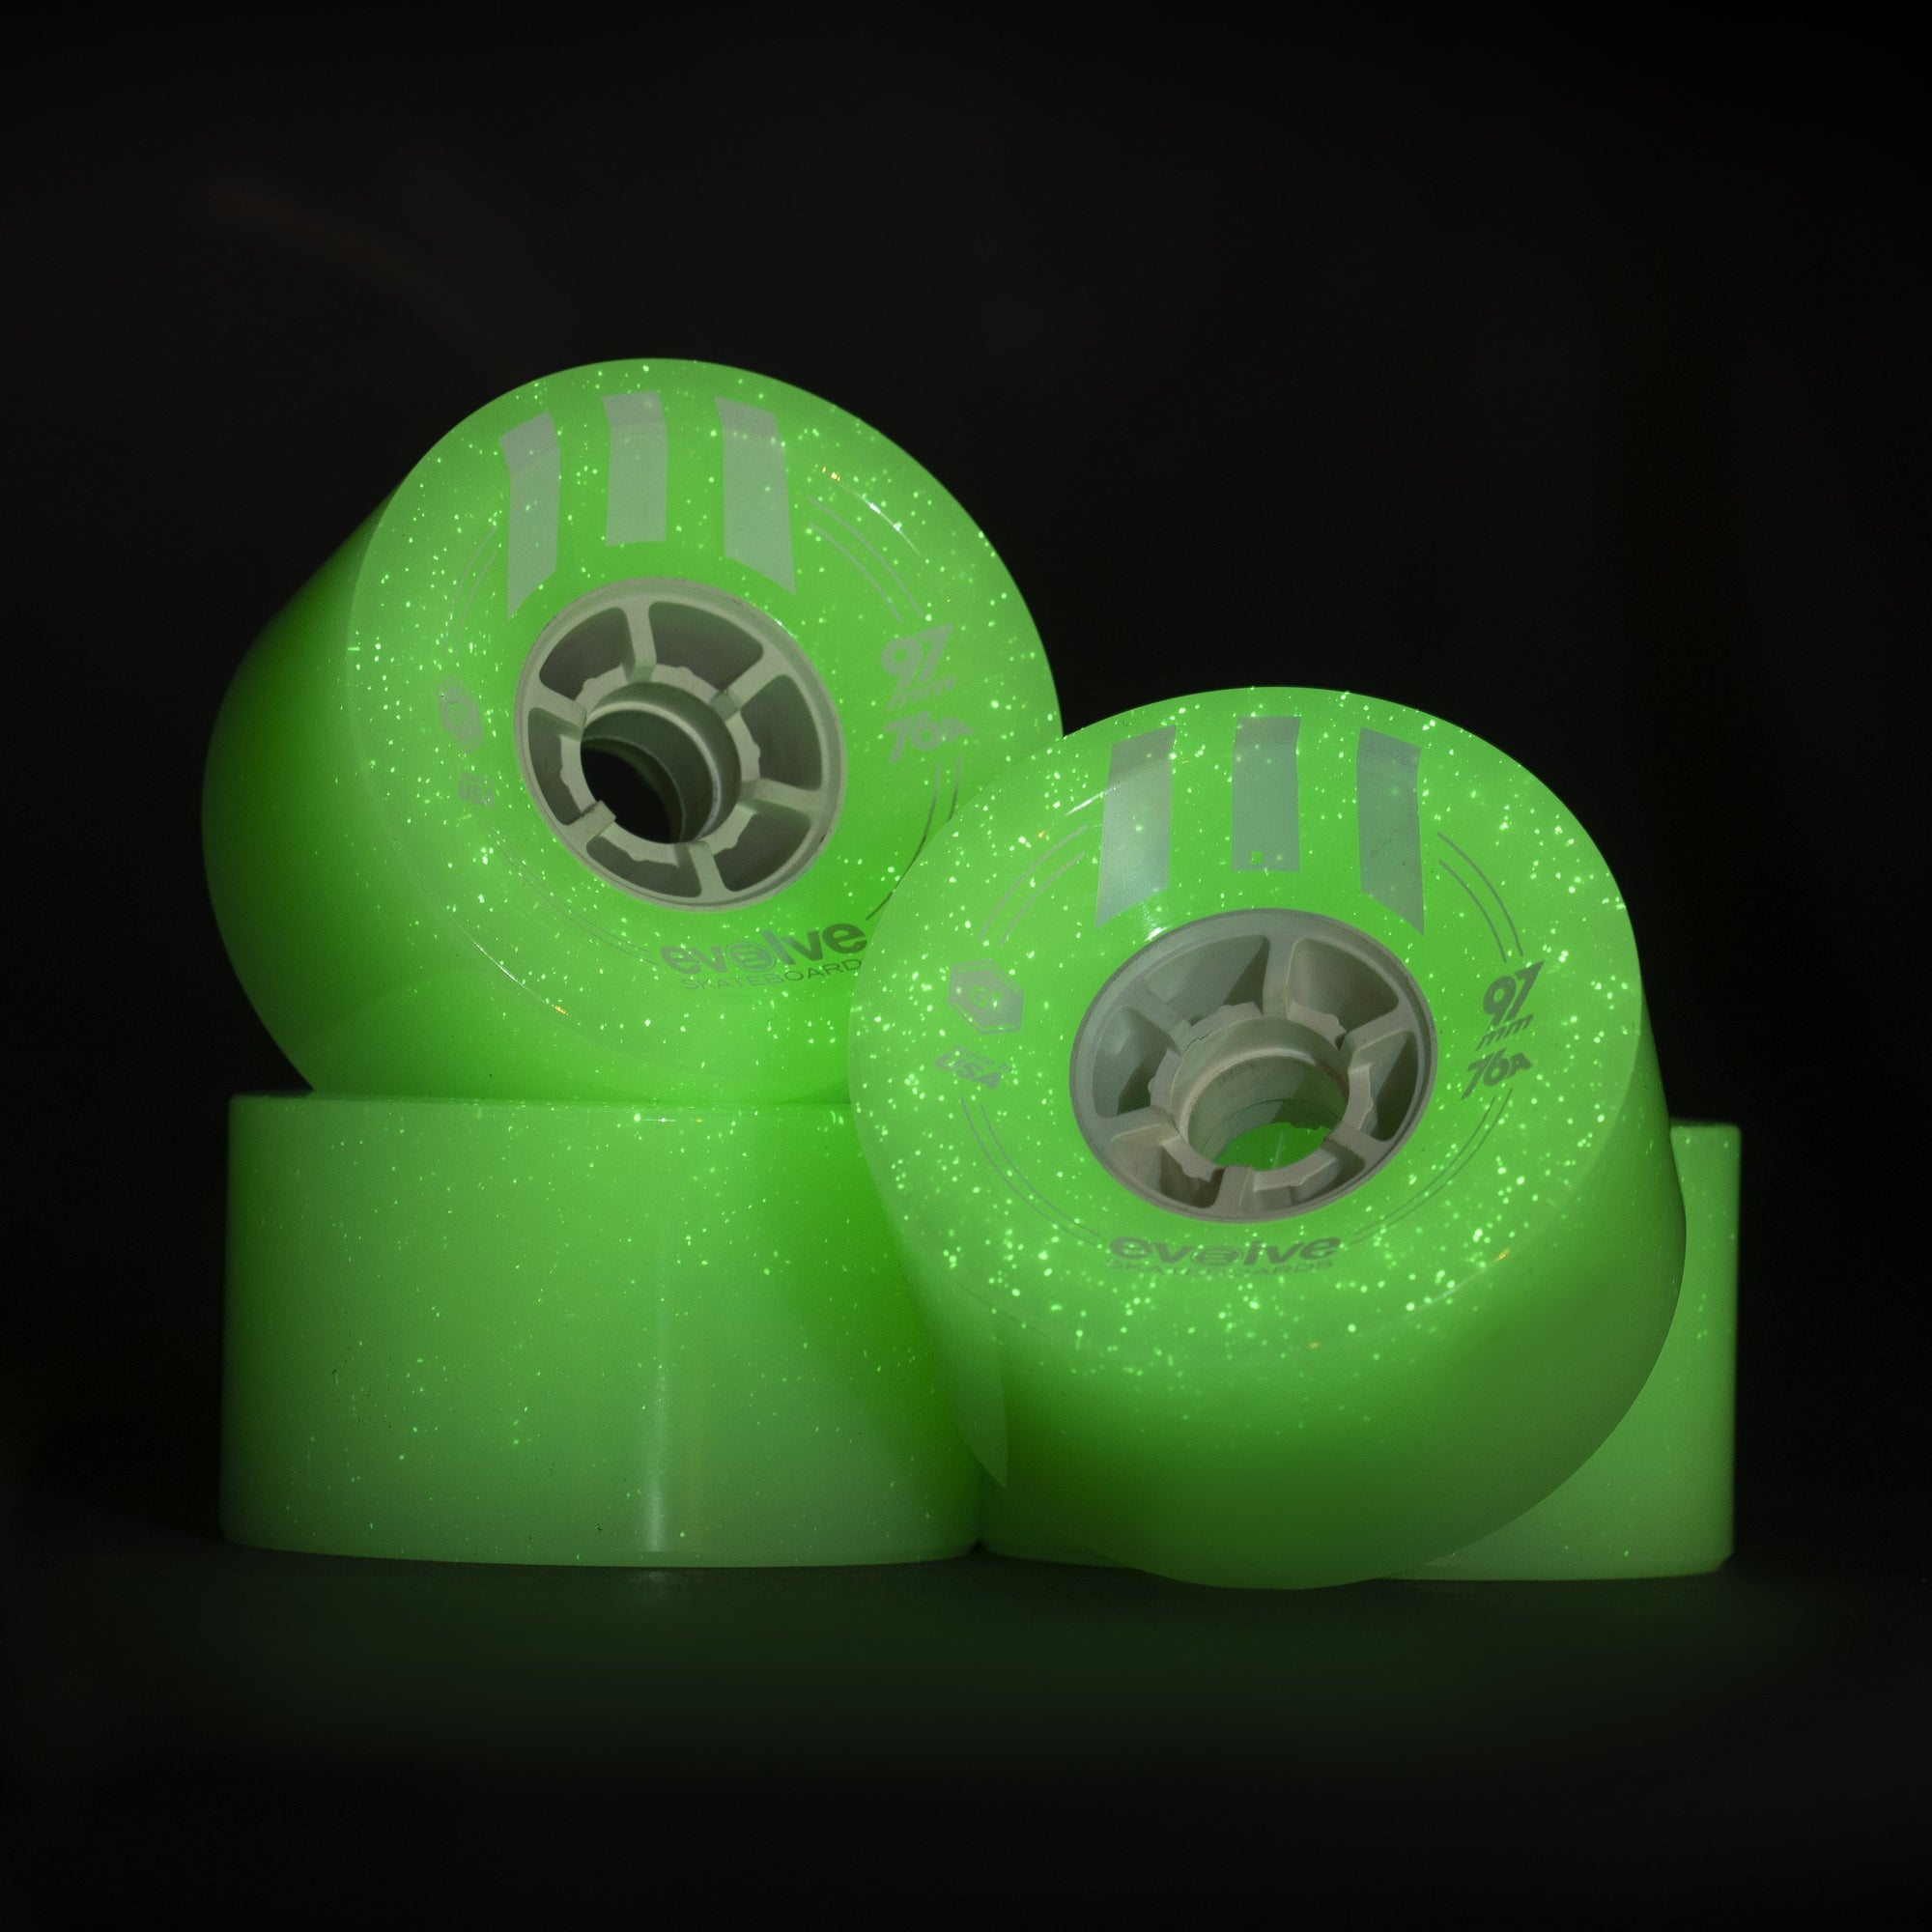 97mm-evolve-gtr-wheels-75a-glow-in-the-dark-32t-gear